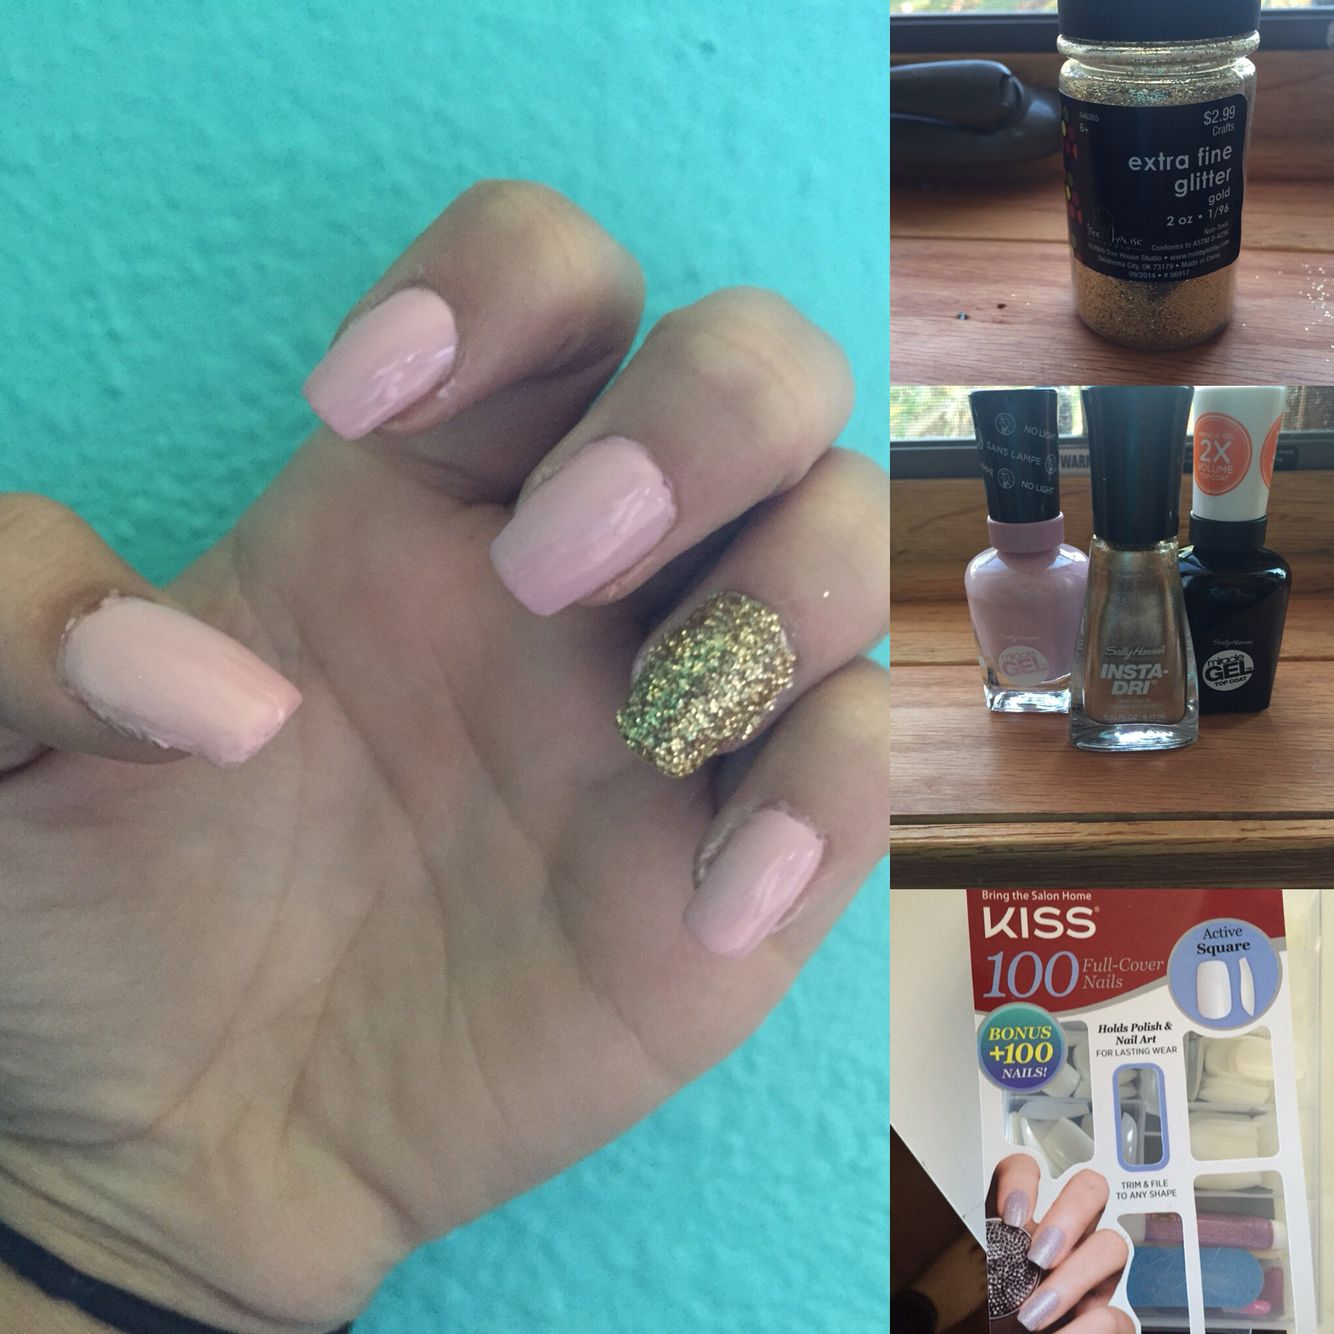 Diy Acrylic Nails Kiss 100 Nails Active Square Style Sally Hansen Miracle Gel In 160 Pinky Prom Diy Acrylic Nails Sally Hansen Miracle Gel Square Nails